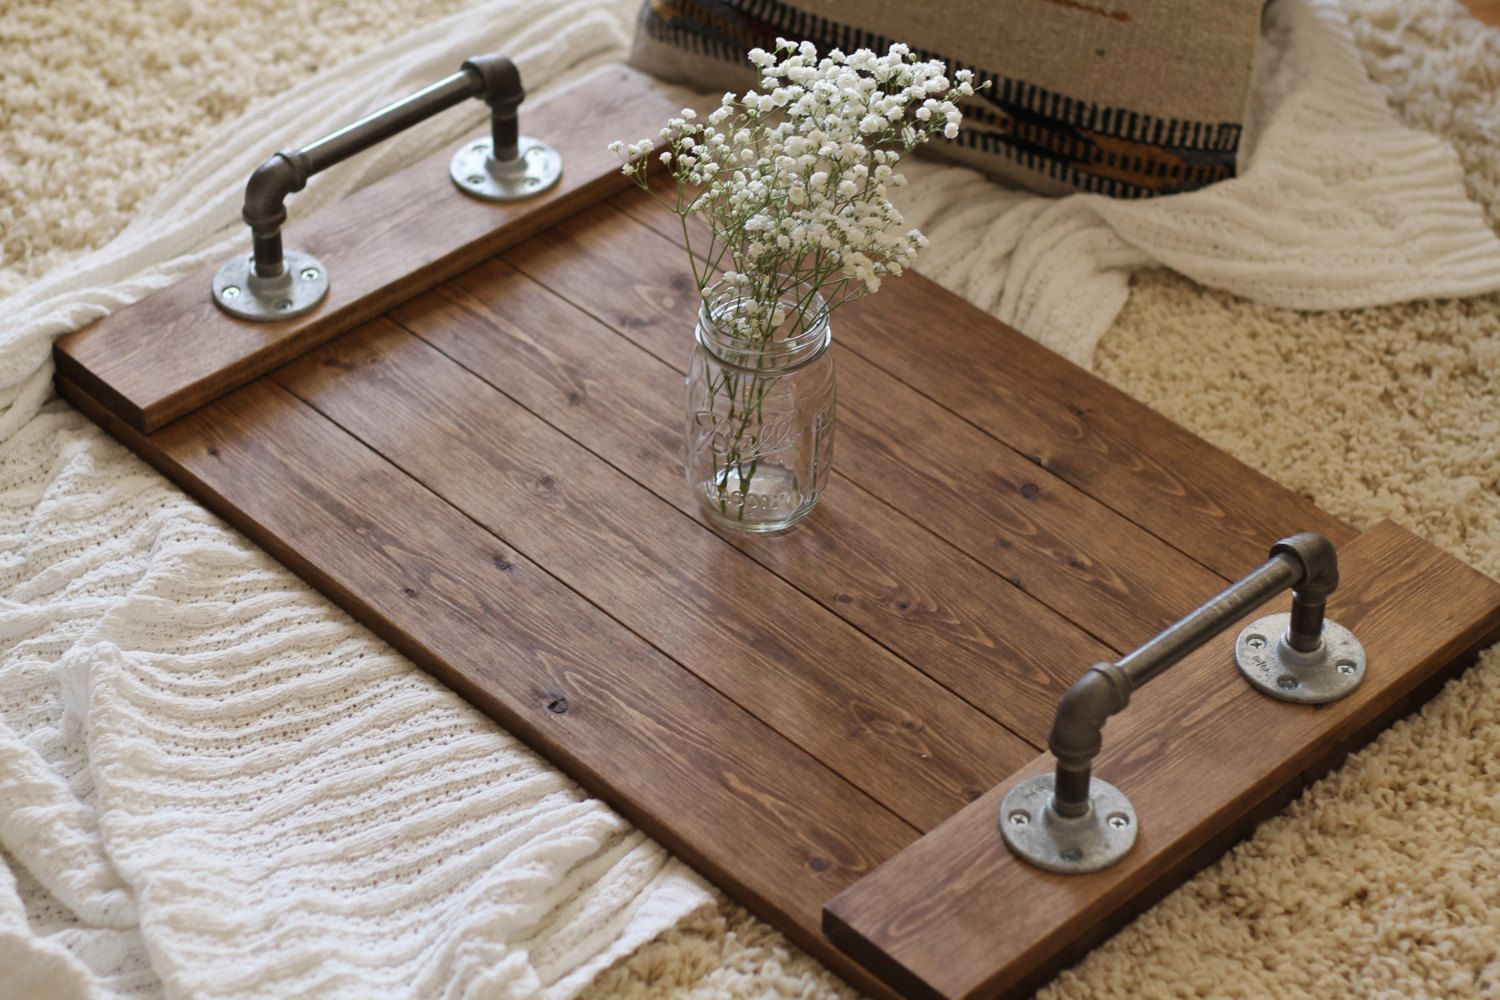 Wooden Tray Decor Stunning Rustic Industrial Tray Wooden Tray Ottomandunnrusticdesigns Inspiration